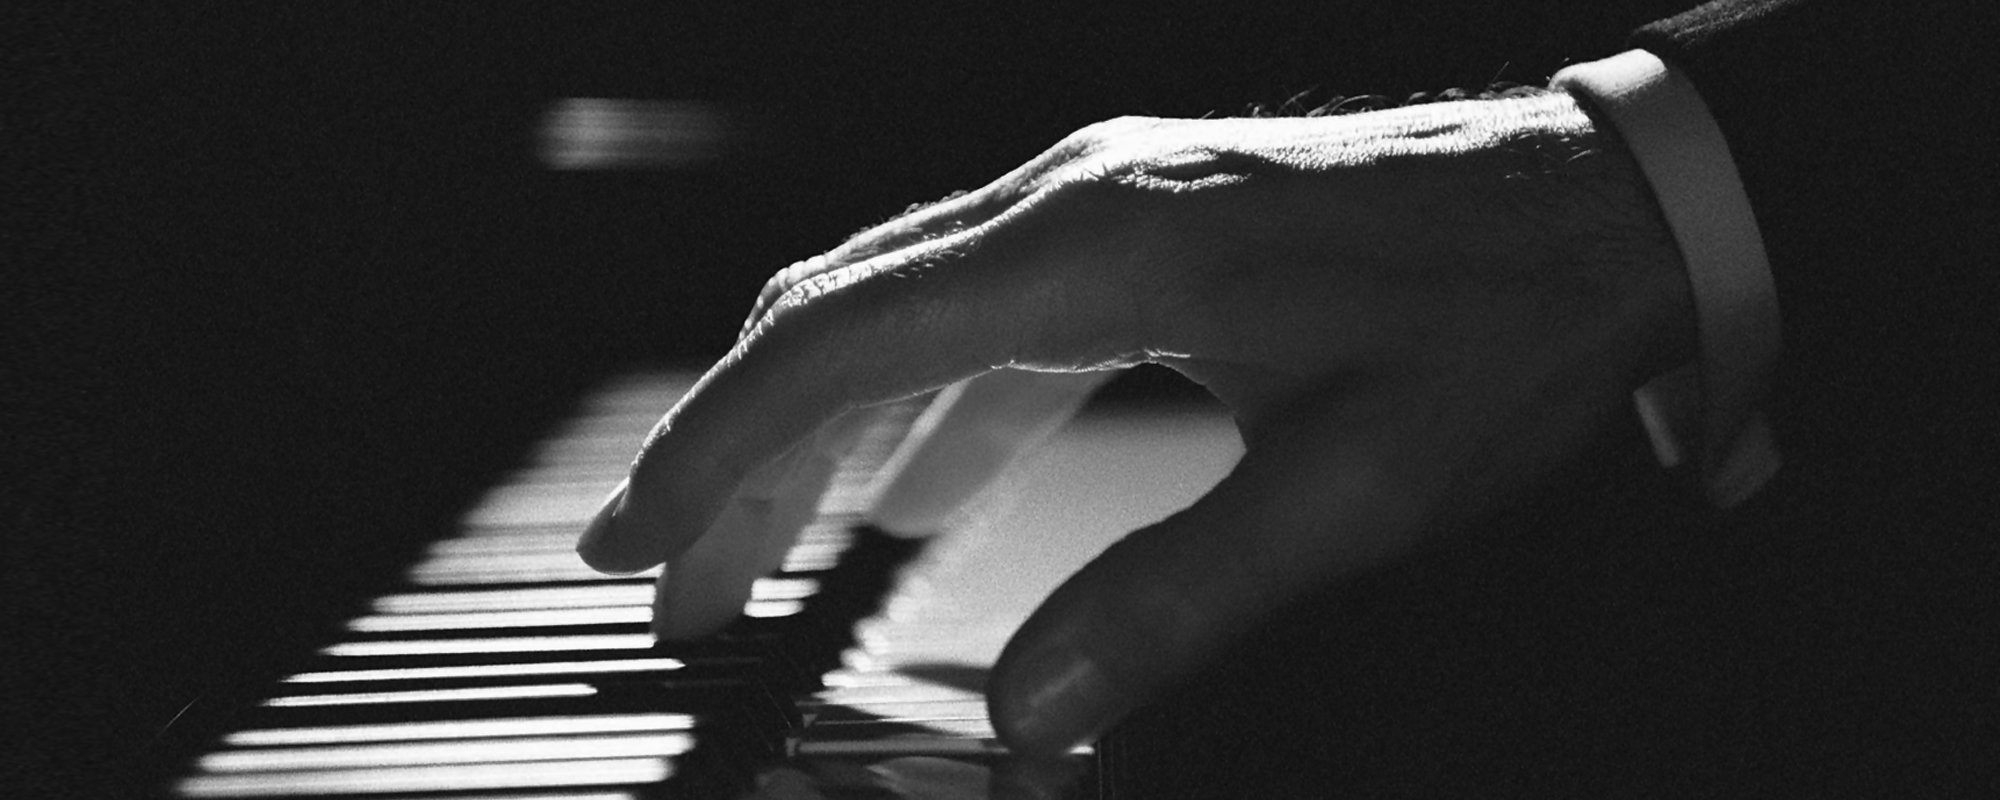 A hand resting on piano keys